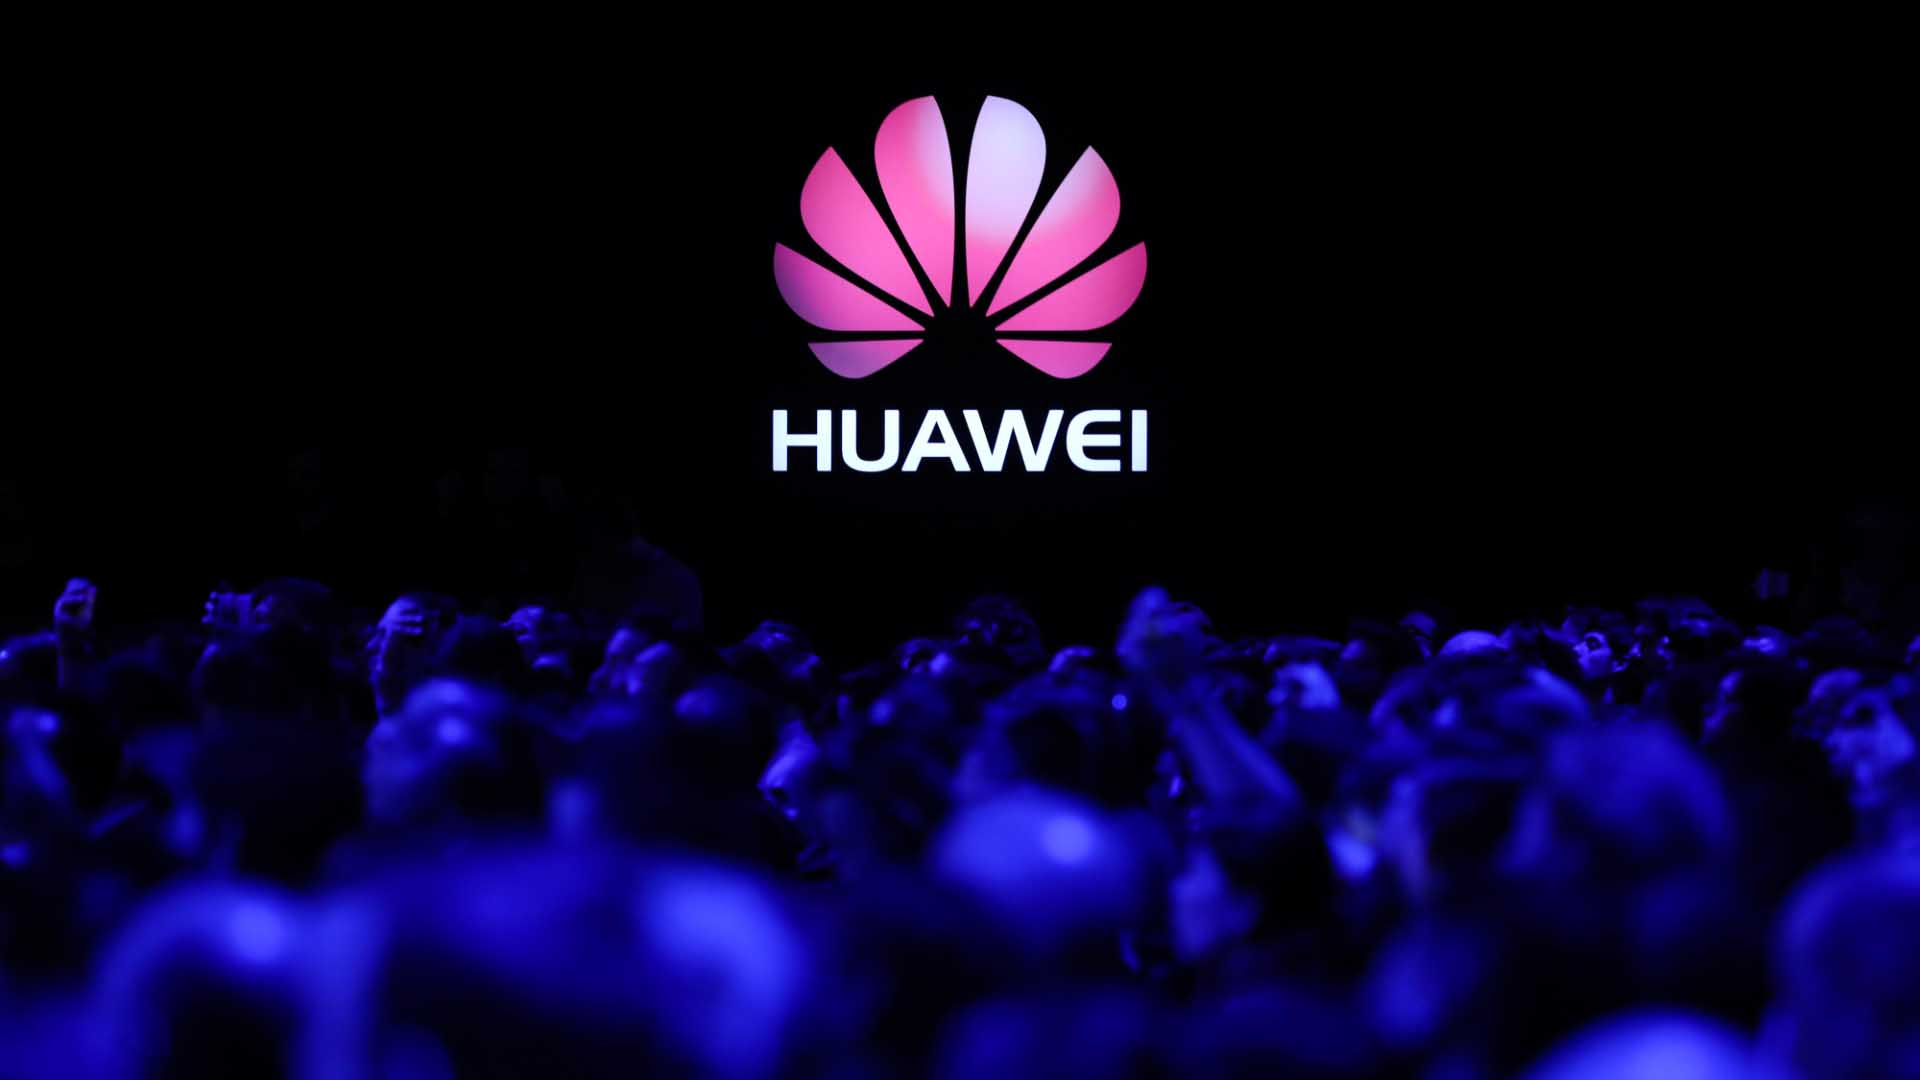 Huawei has reduced staff for publication on Twitter with iPhone